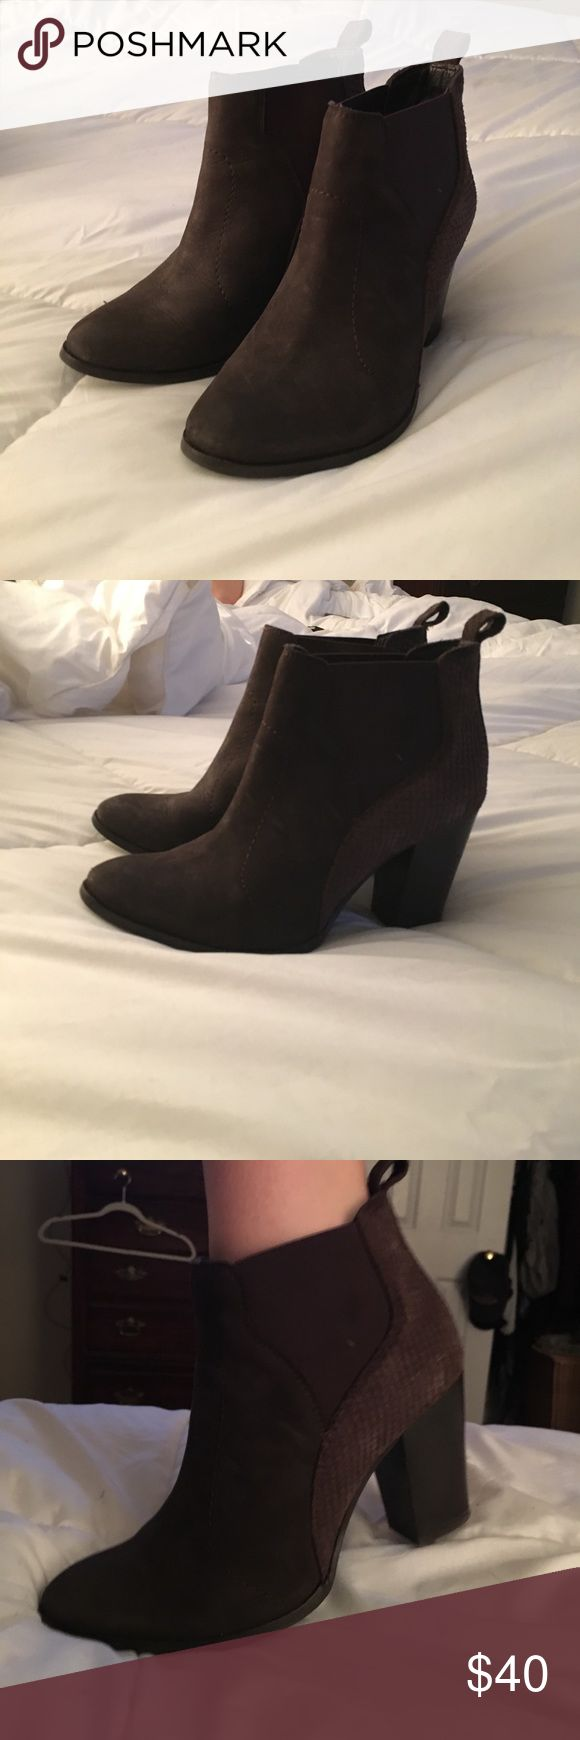 Seychelles booties 7.5 Seychelles brown booties 7.5 Shoes Ankle Boots & Booties